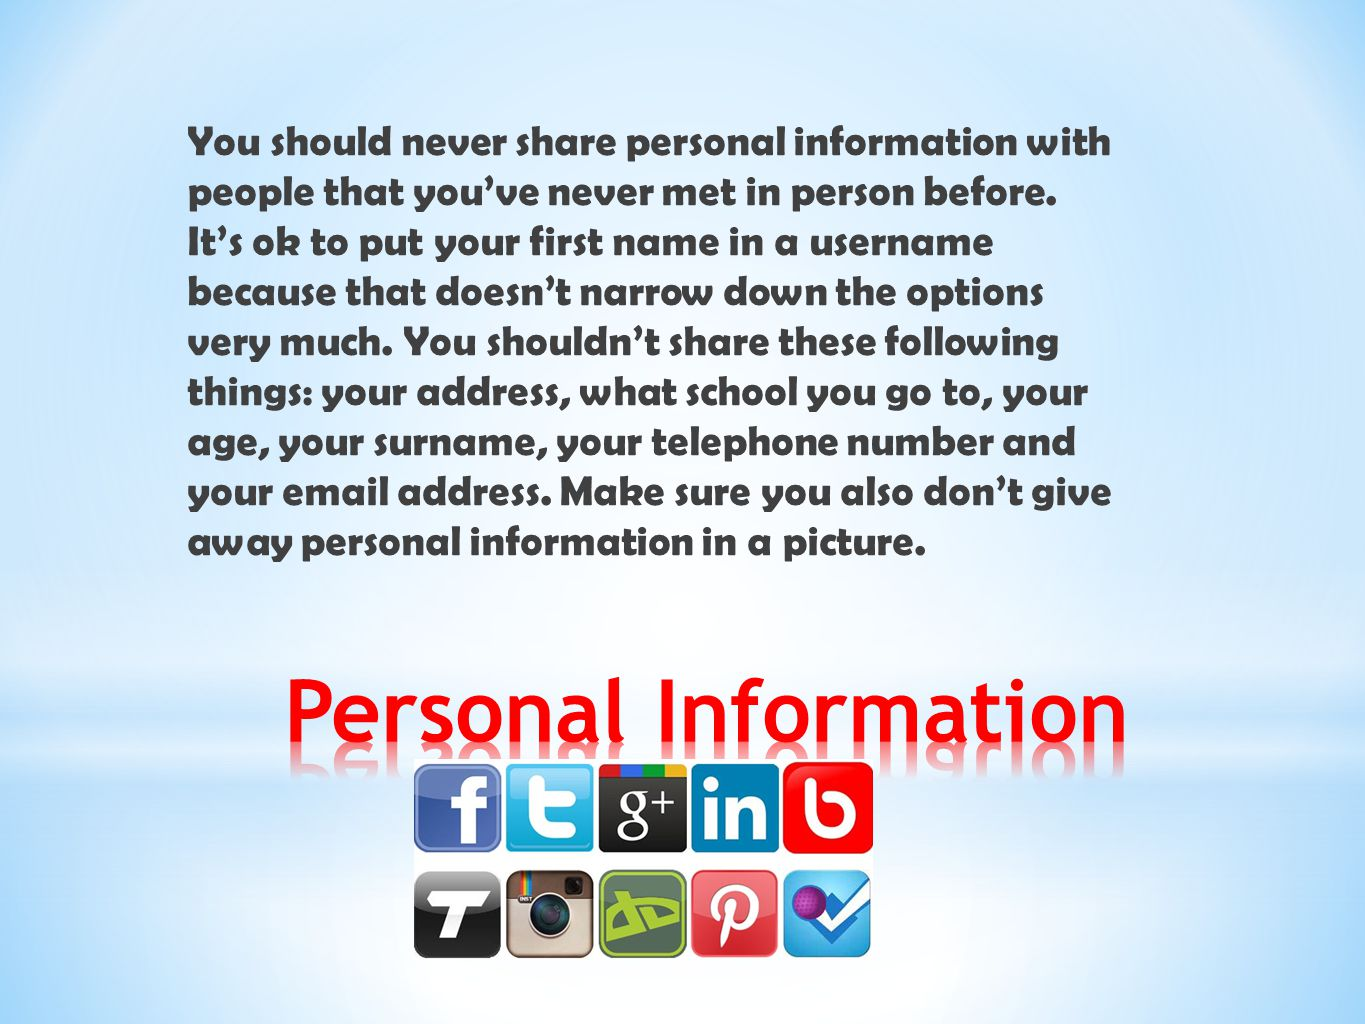 You should never share personal information with people that you've never met in person before. It's ok to put your first name in a username because that doesn't narrow down the options very much. You shouldn't share these following things: your address, what school you go to, your age, your surname, your telephone number and your  address. Make sure you also don't give away personal information in a picture.